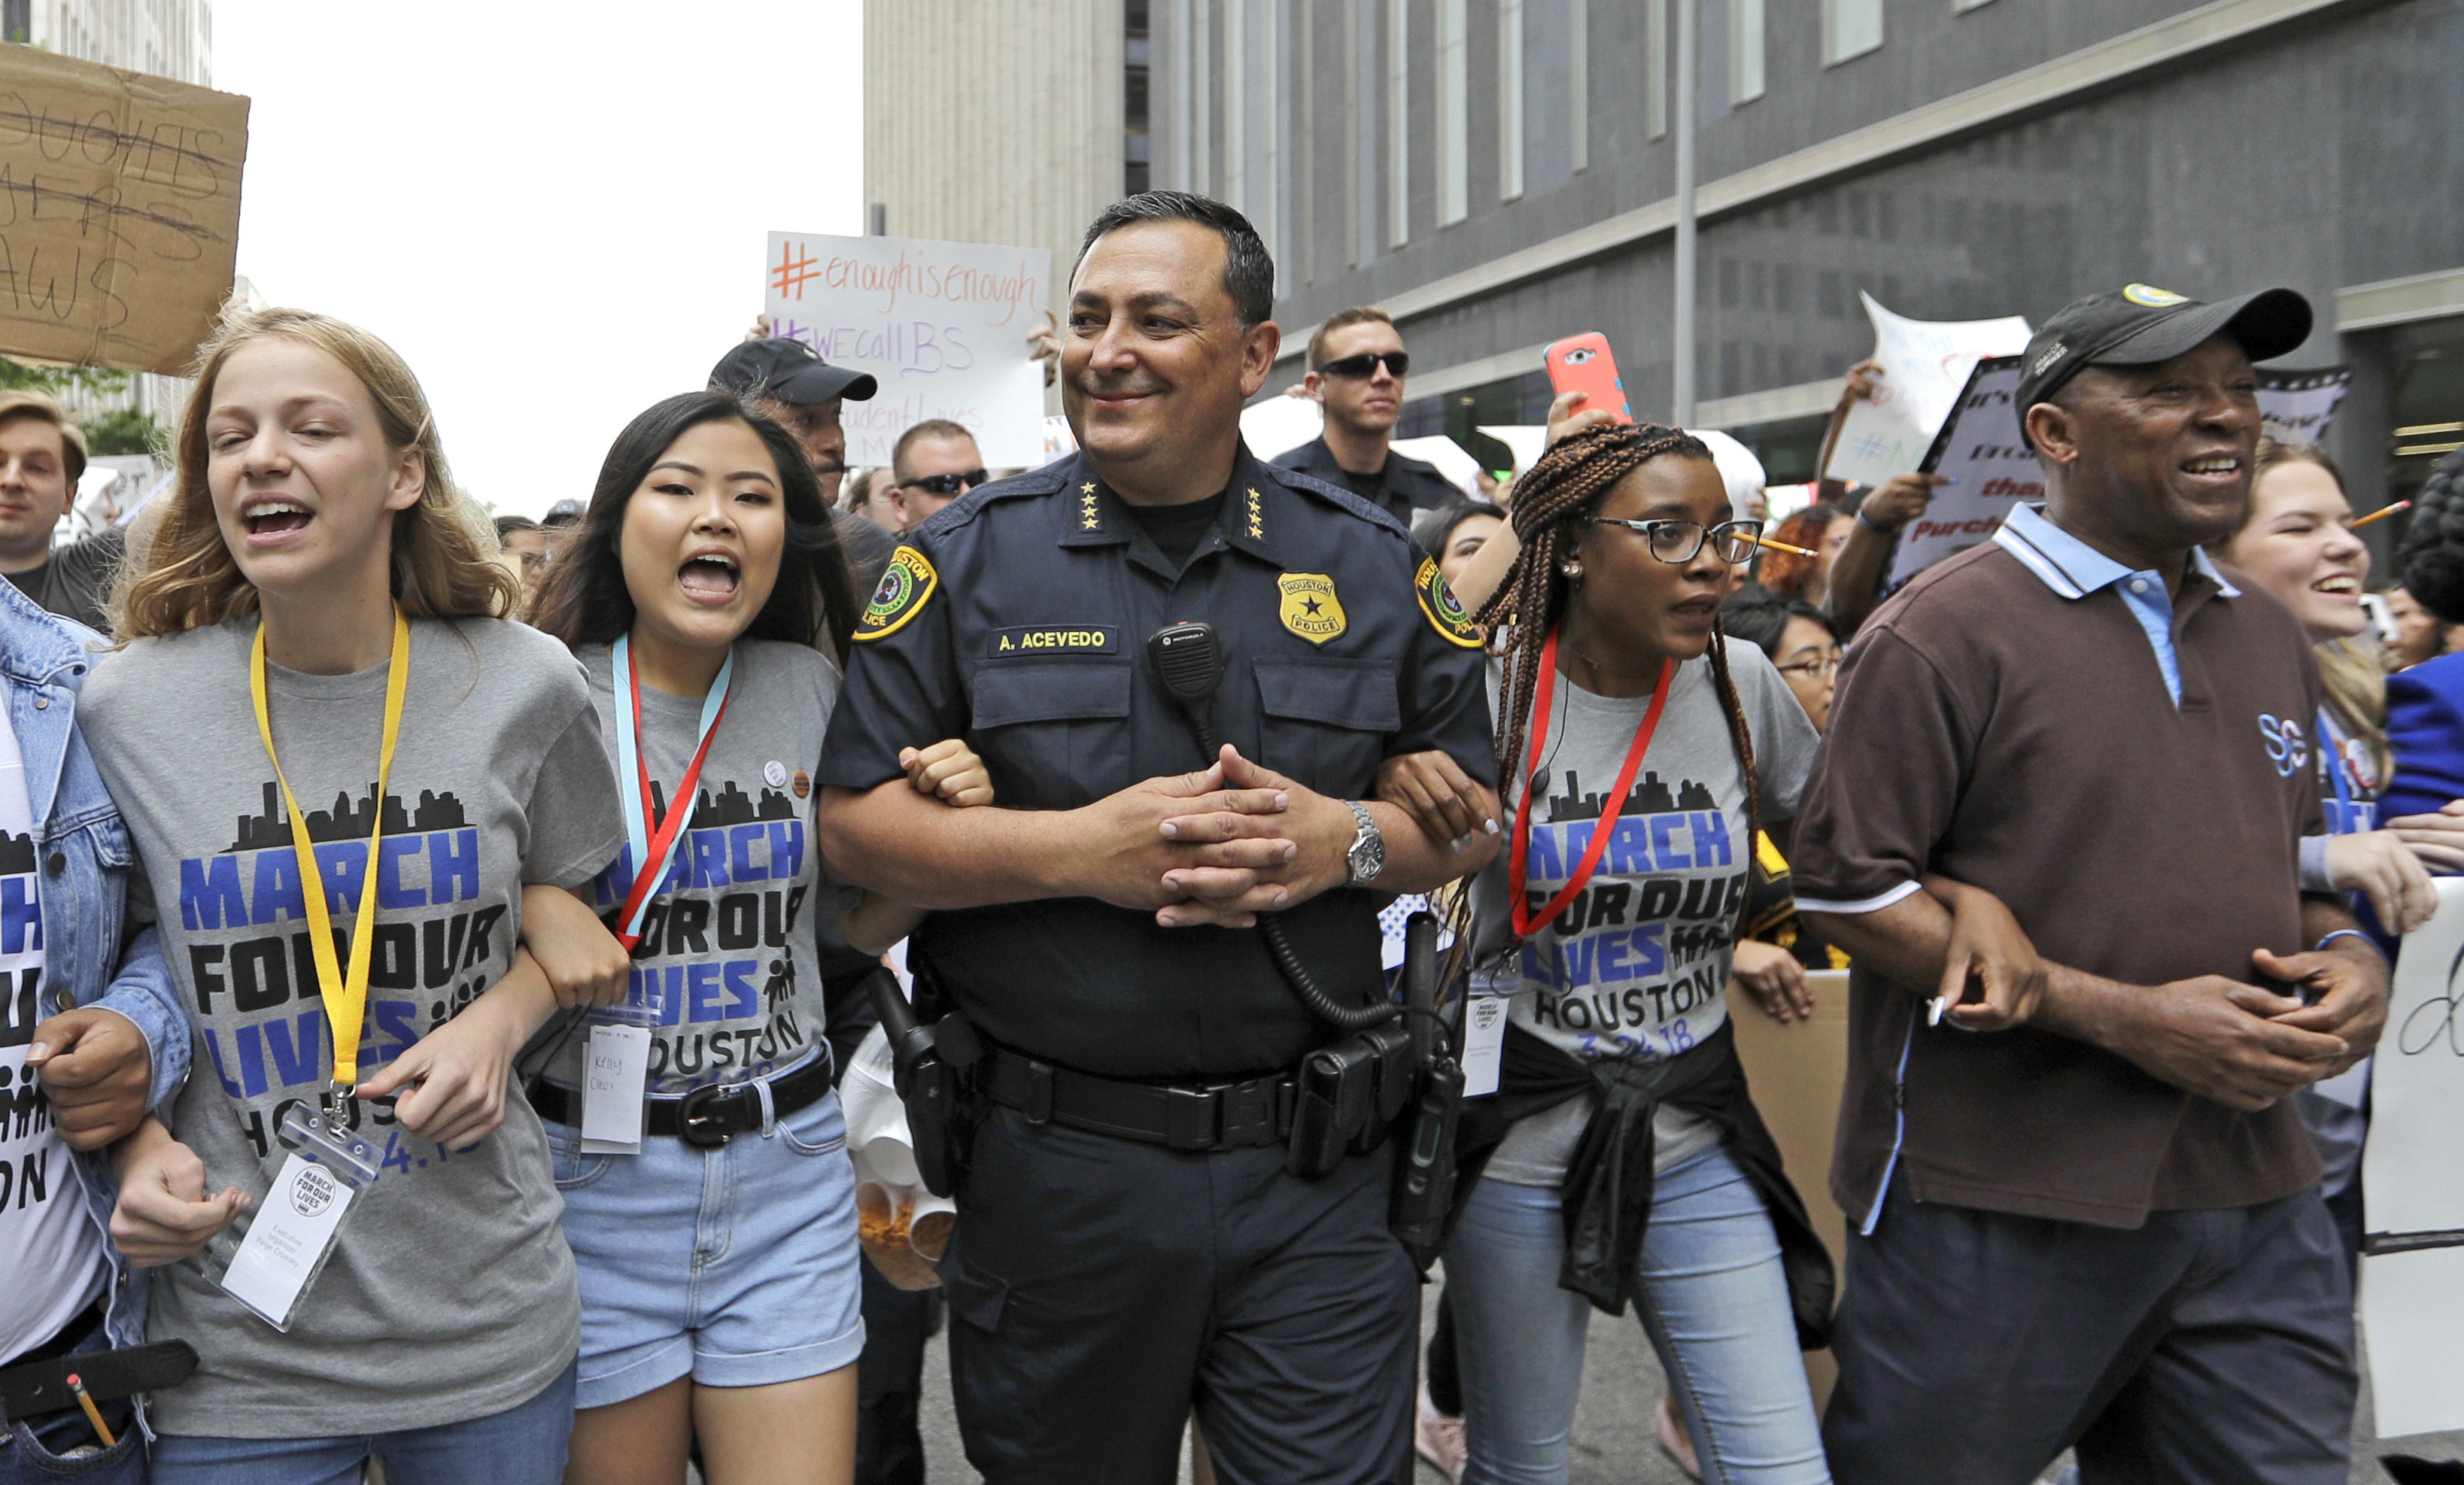 """Houston Police Chief Art Acevedo, center, and Houston Mayor Sylvester Turner, far right, join demonstrators during a """"March for Our Lives"""" protest for gun legislation and school safety Saturday, March 24, 2018, in Houston. Turner has told several thousand people demonstrating for stricter gun control that adults have a responsibility to stand up and protect all children. (AP Photo/David J. Phillip)"""